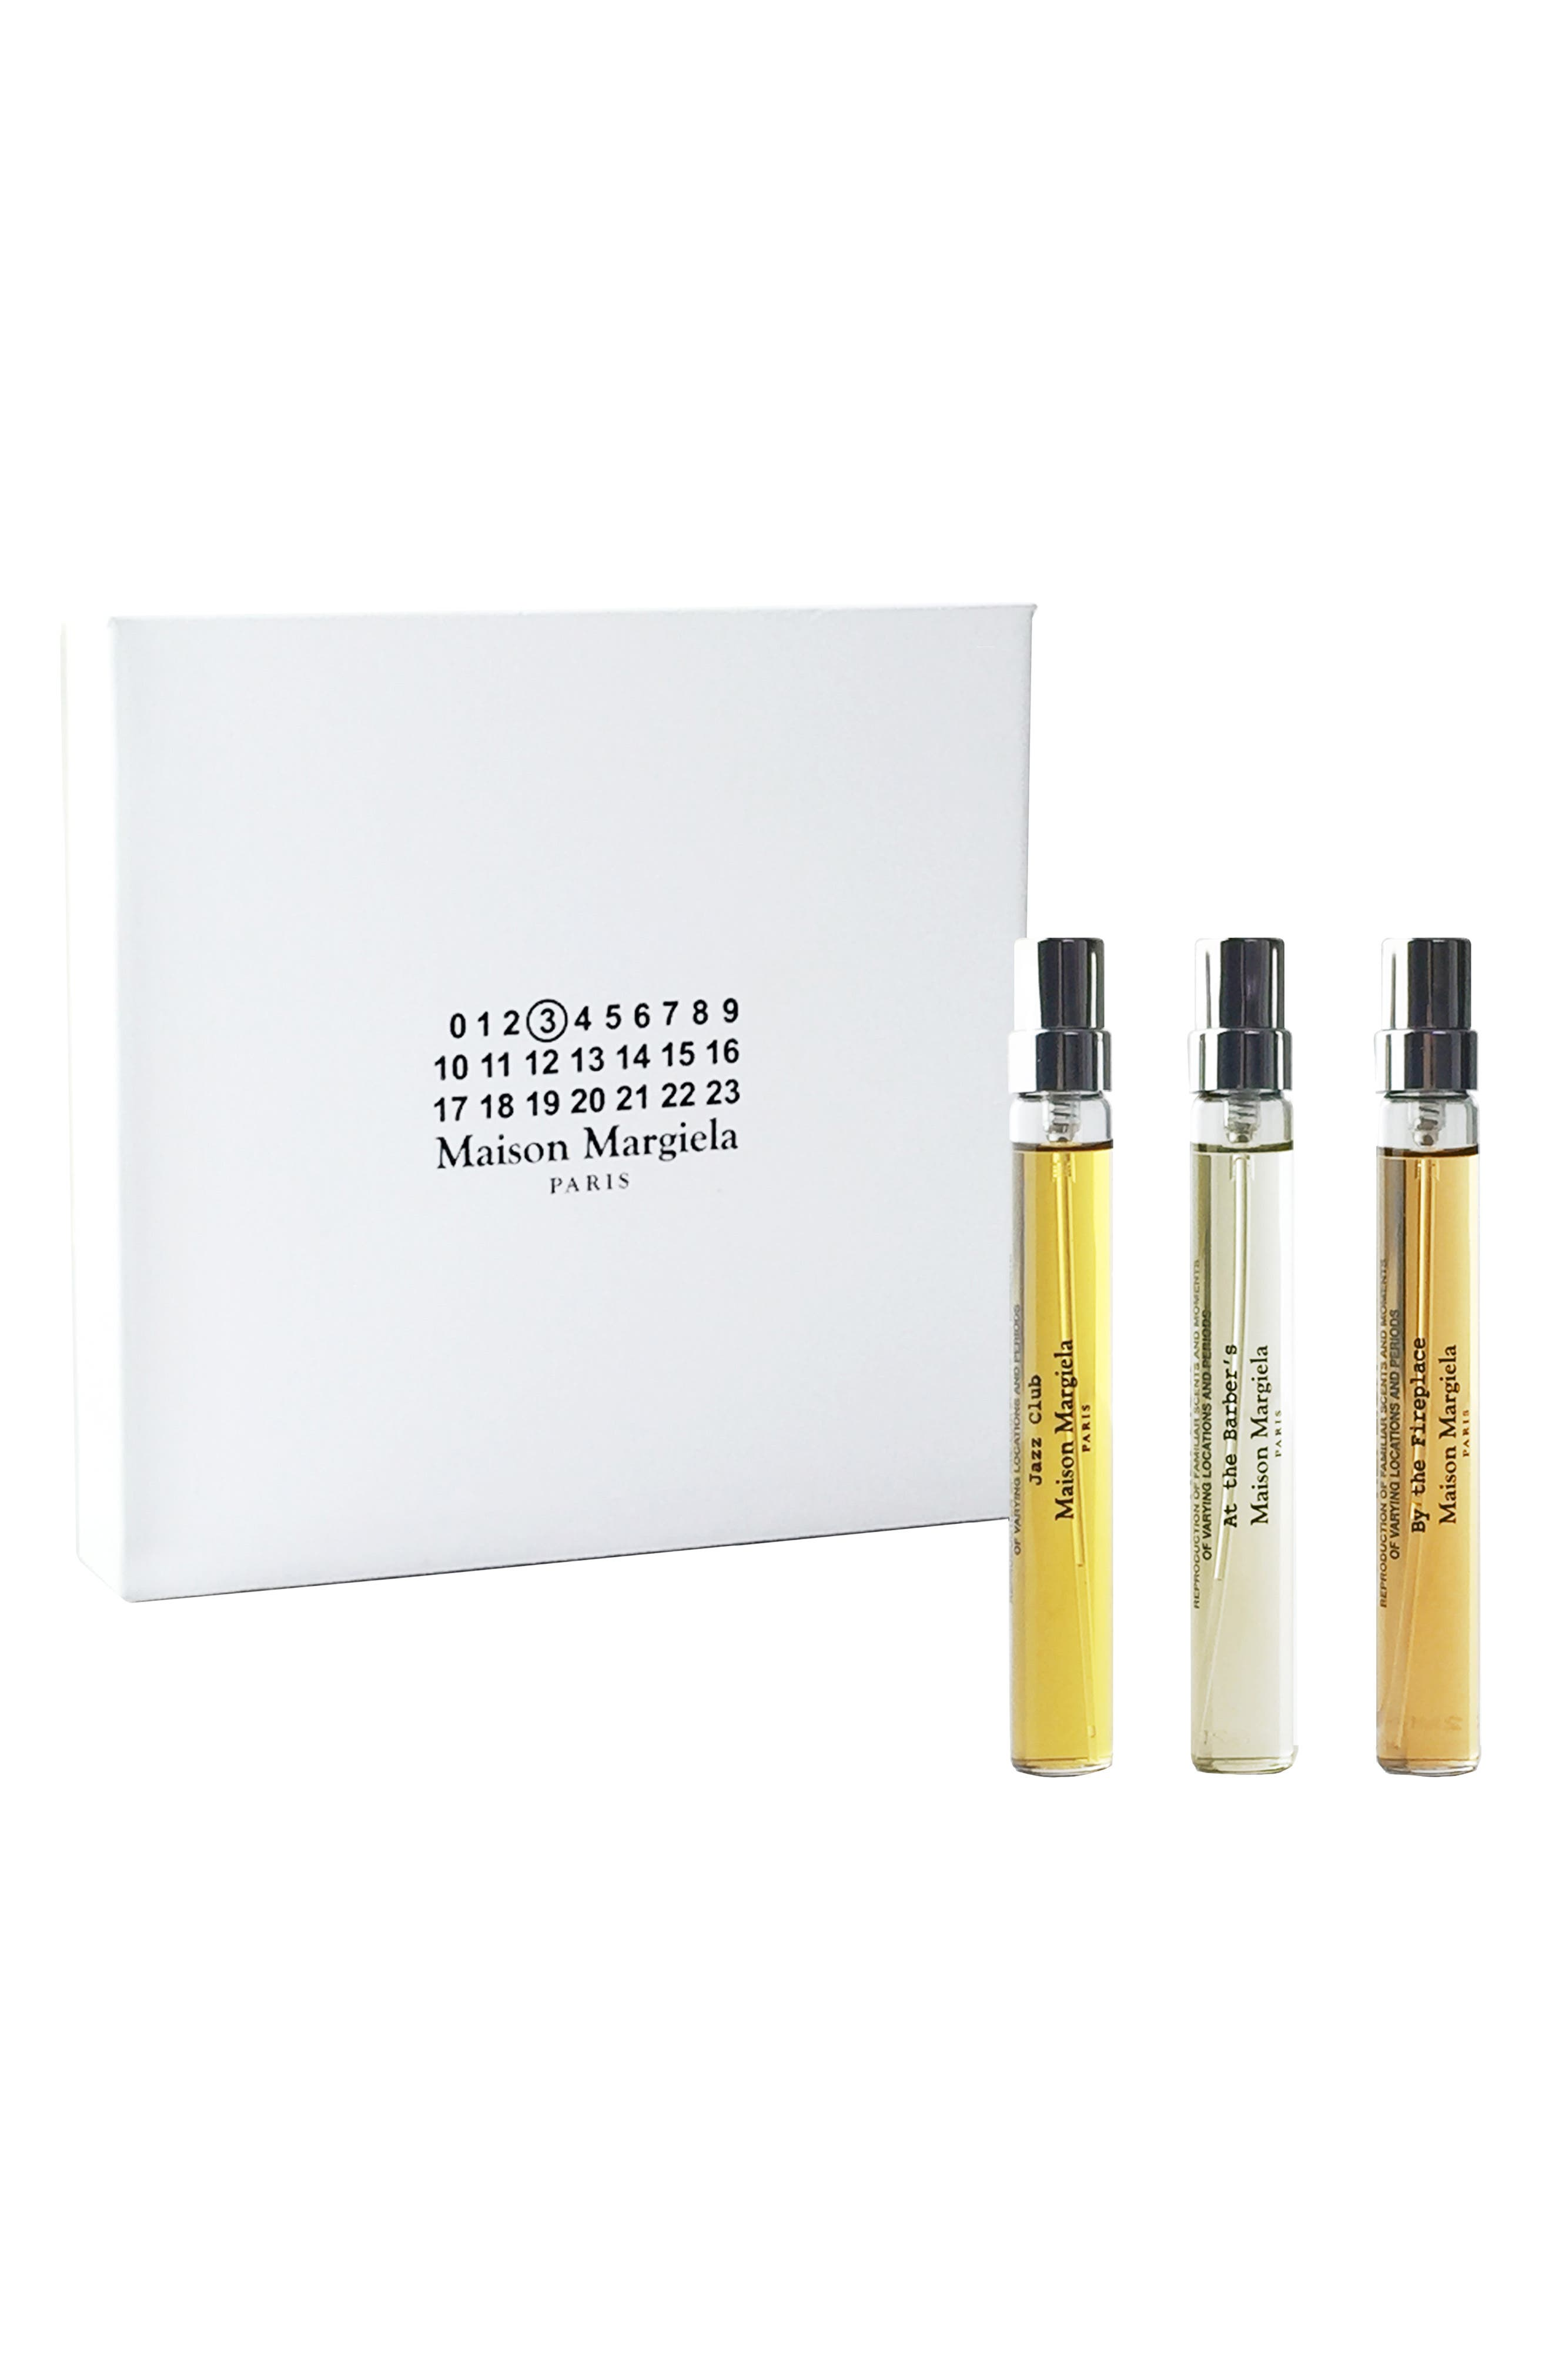 Maison Margiela Replica Masculine Discovery Set ($84 Value)